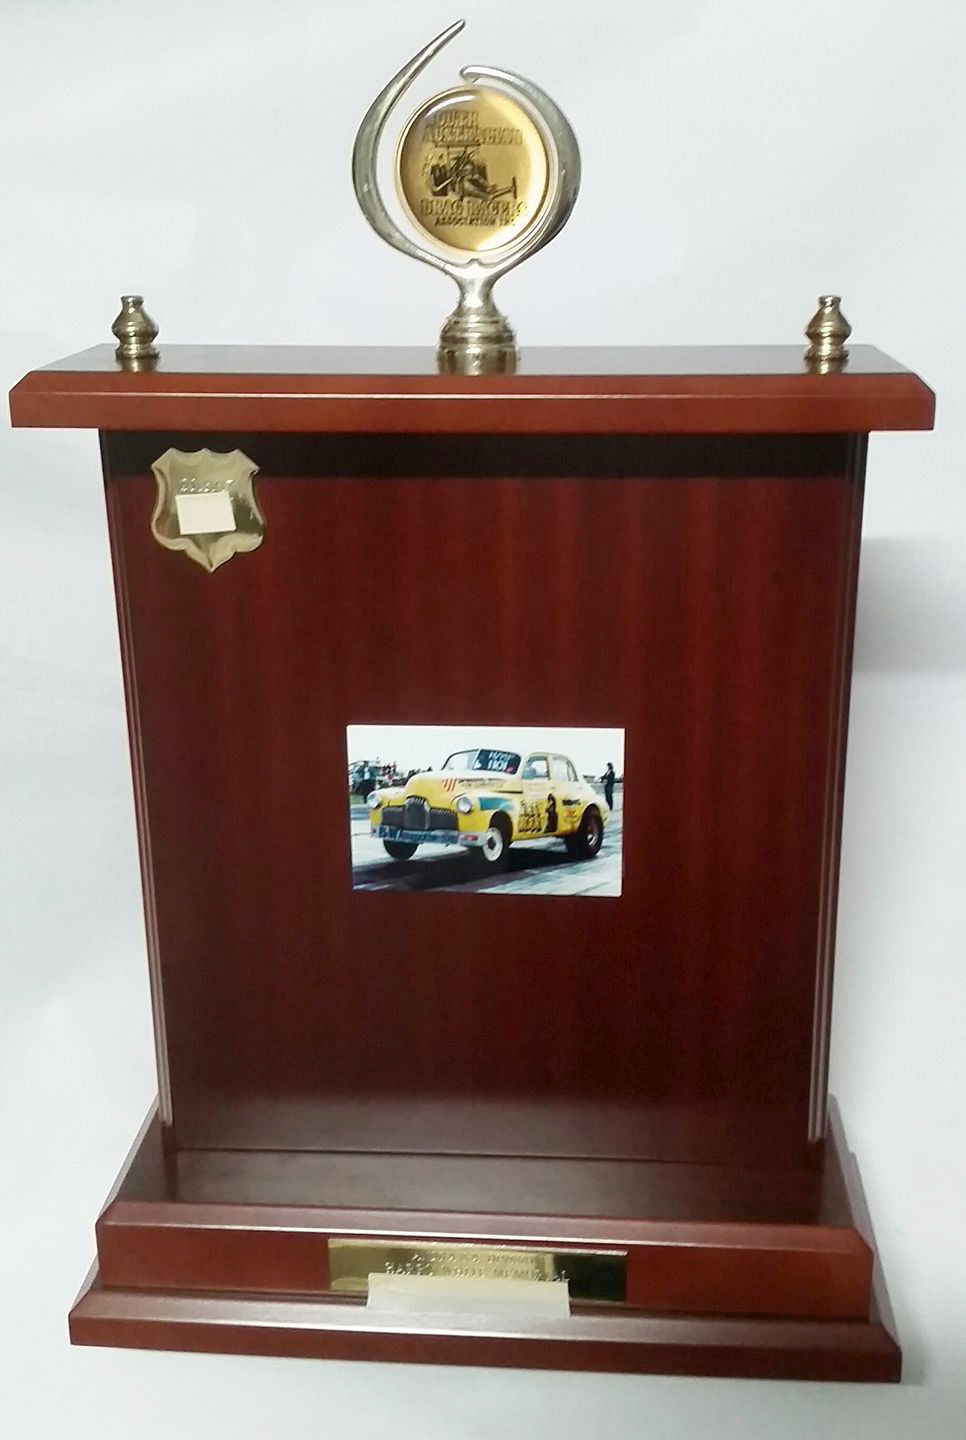 harry-white-memorial-trophy